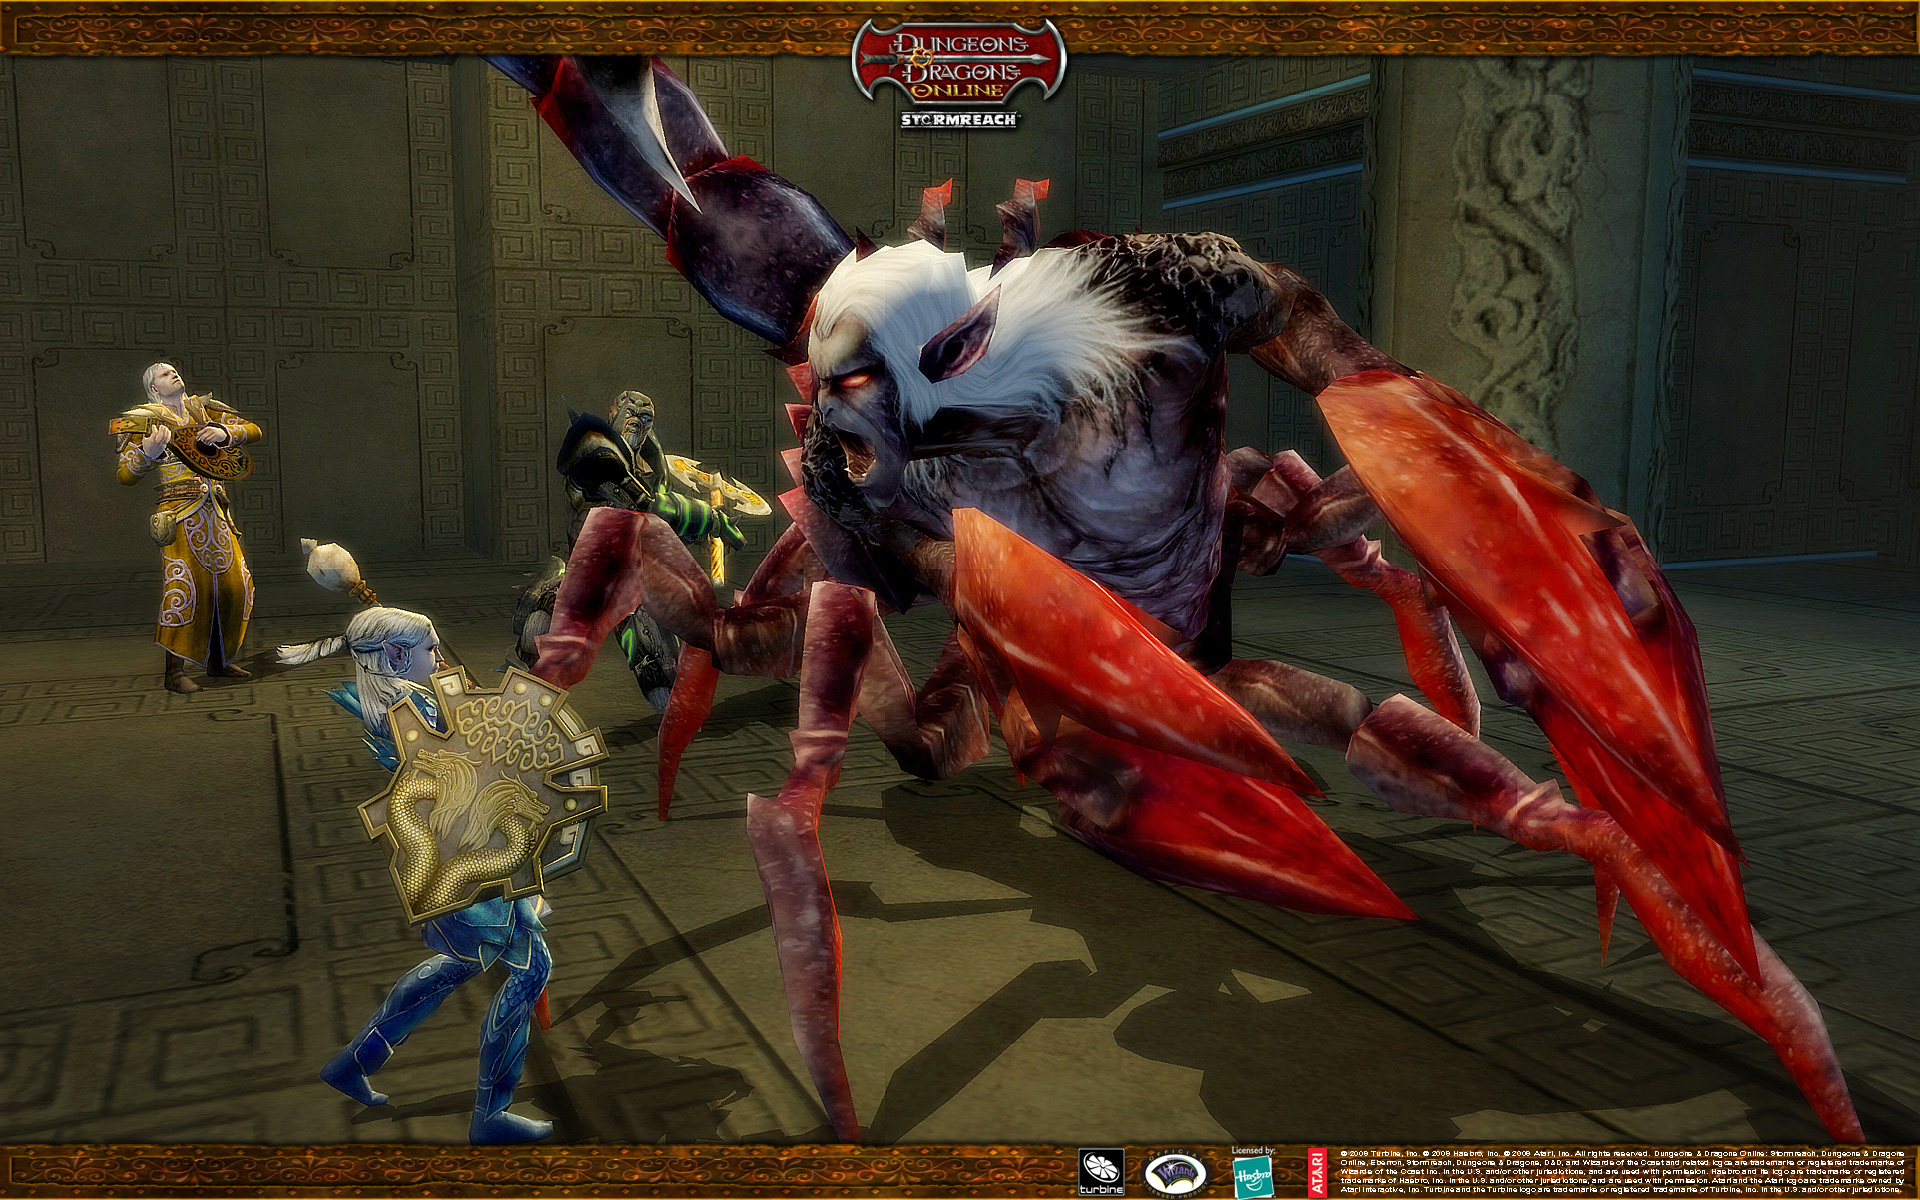 Free Dungeons & Dragons Online Wallpaper in 1920x1200